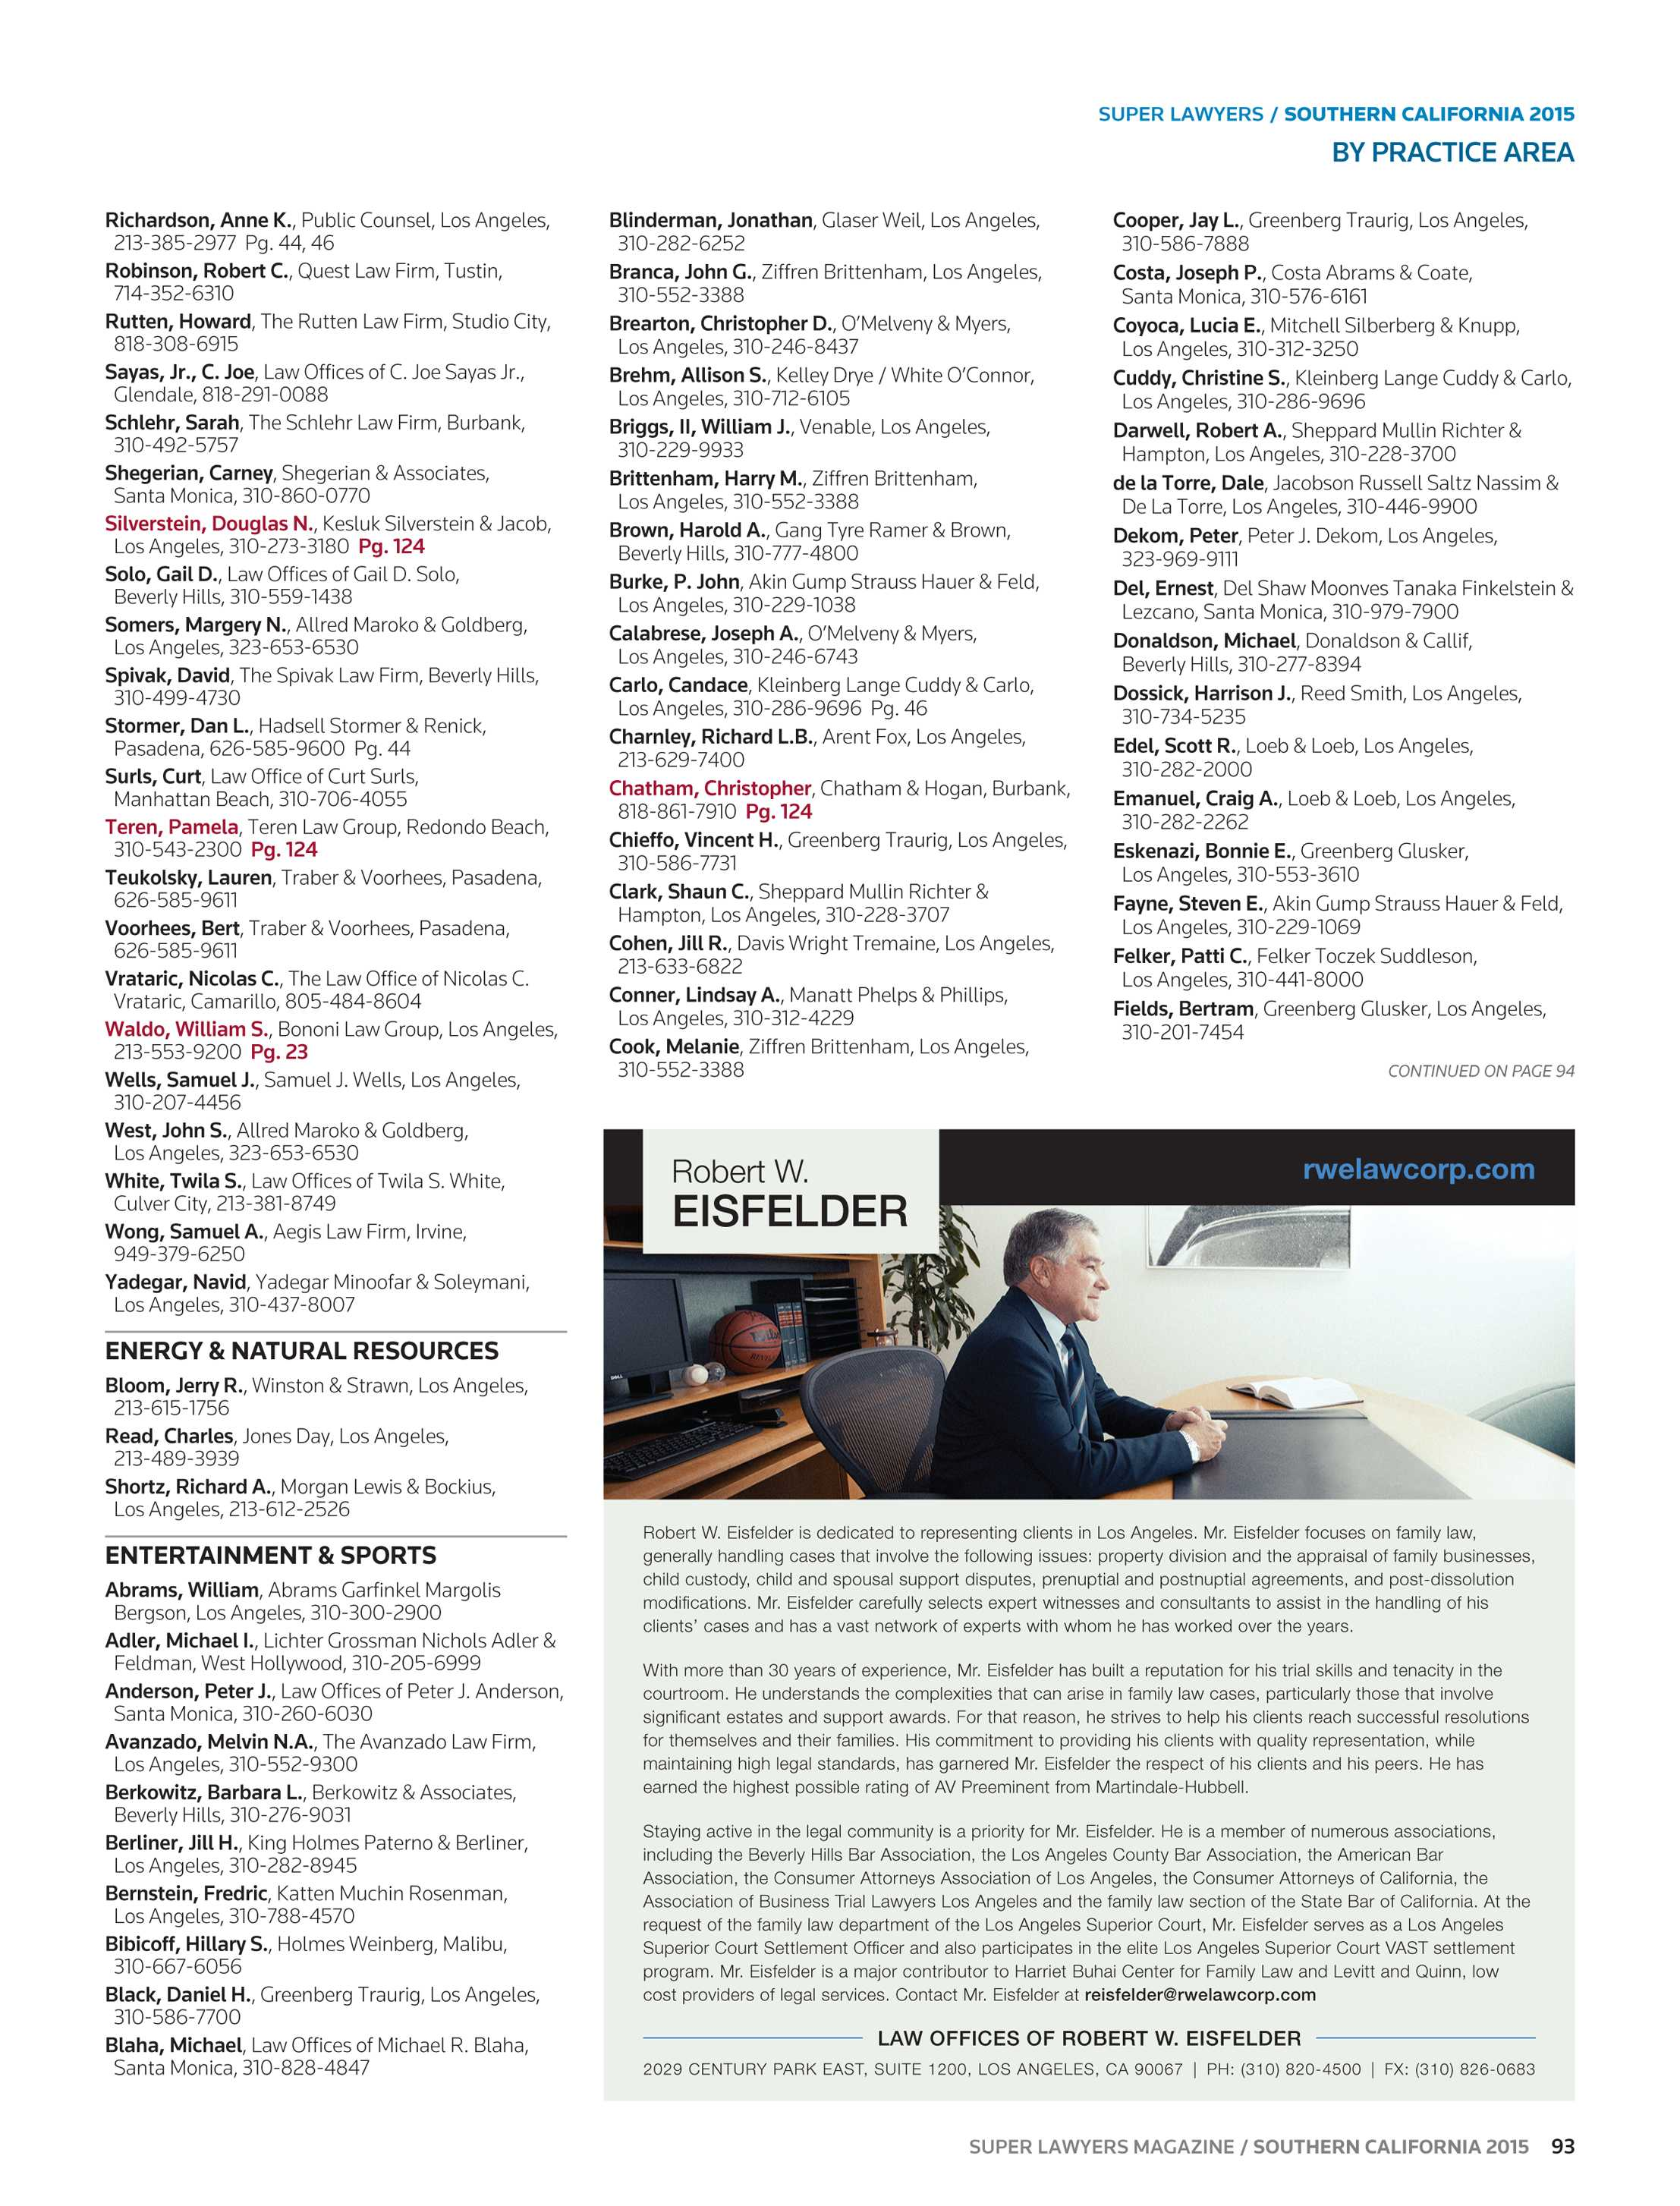 Super Lawyers - Southern California 2015 - page 93